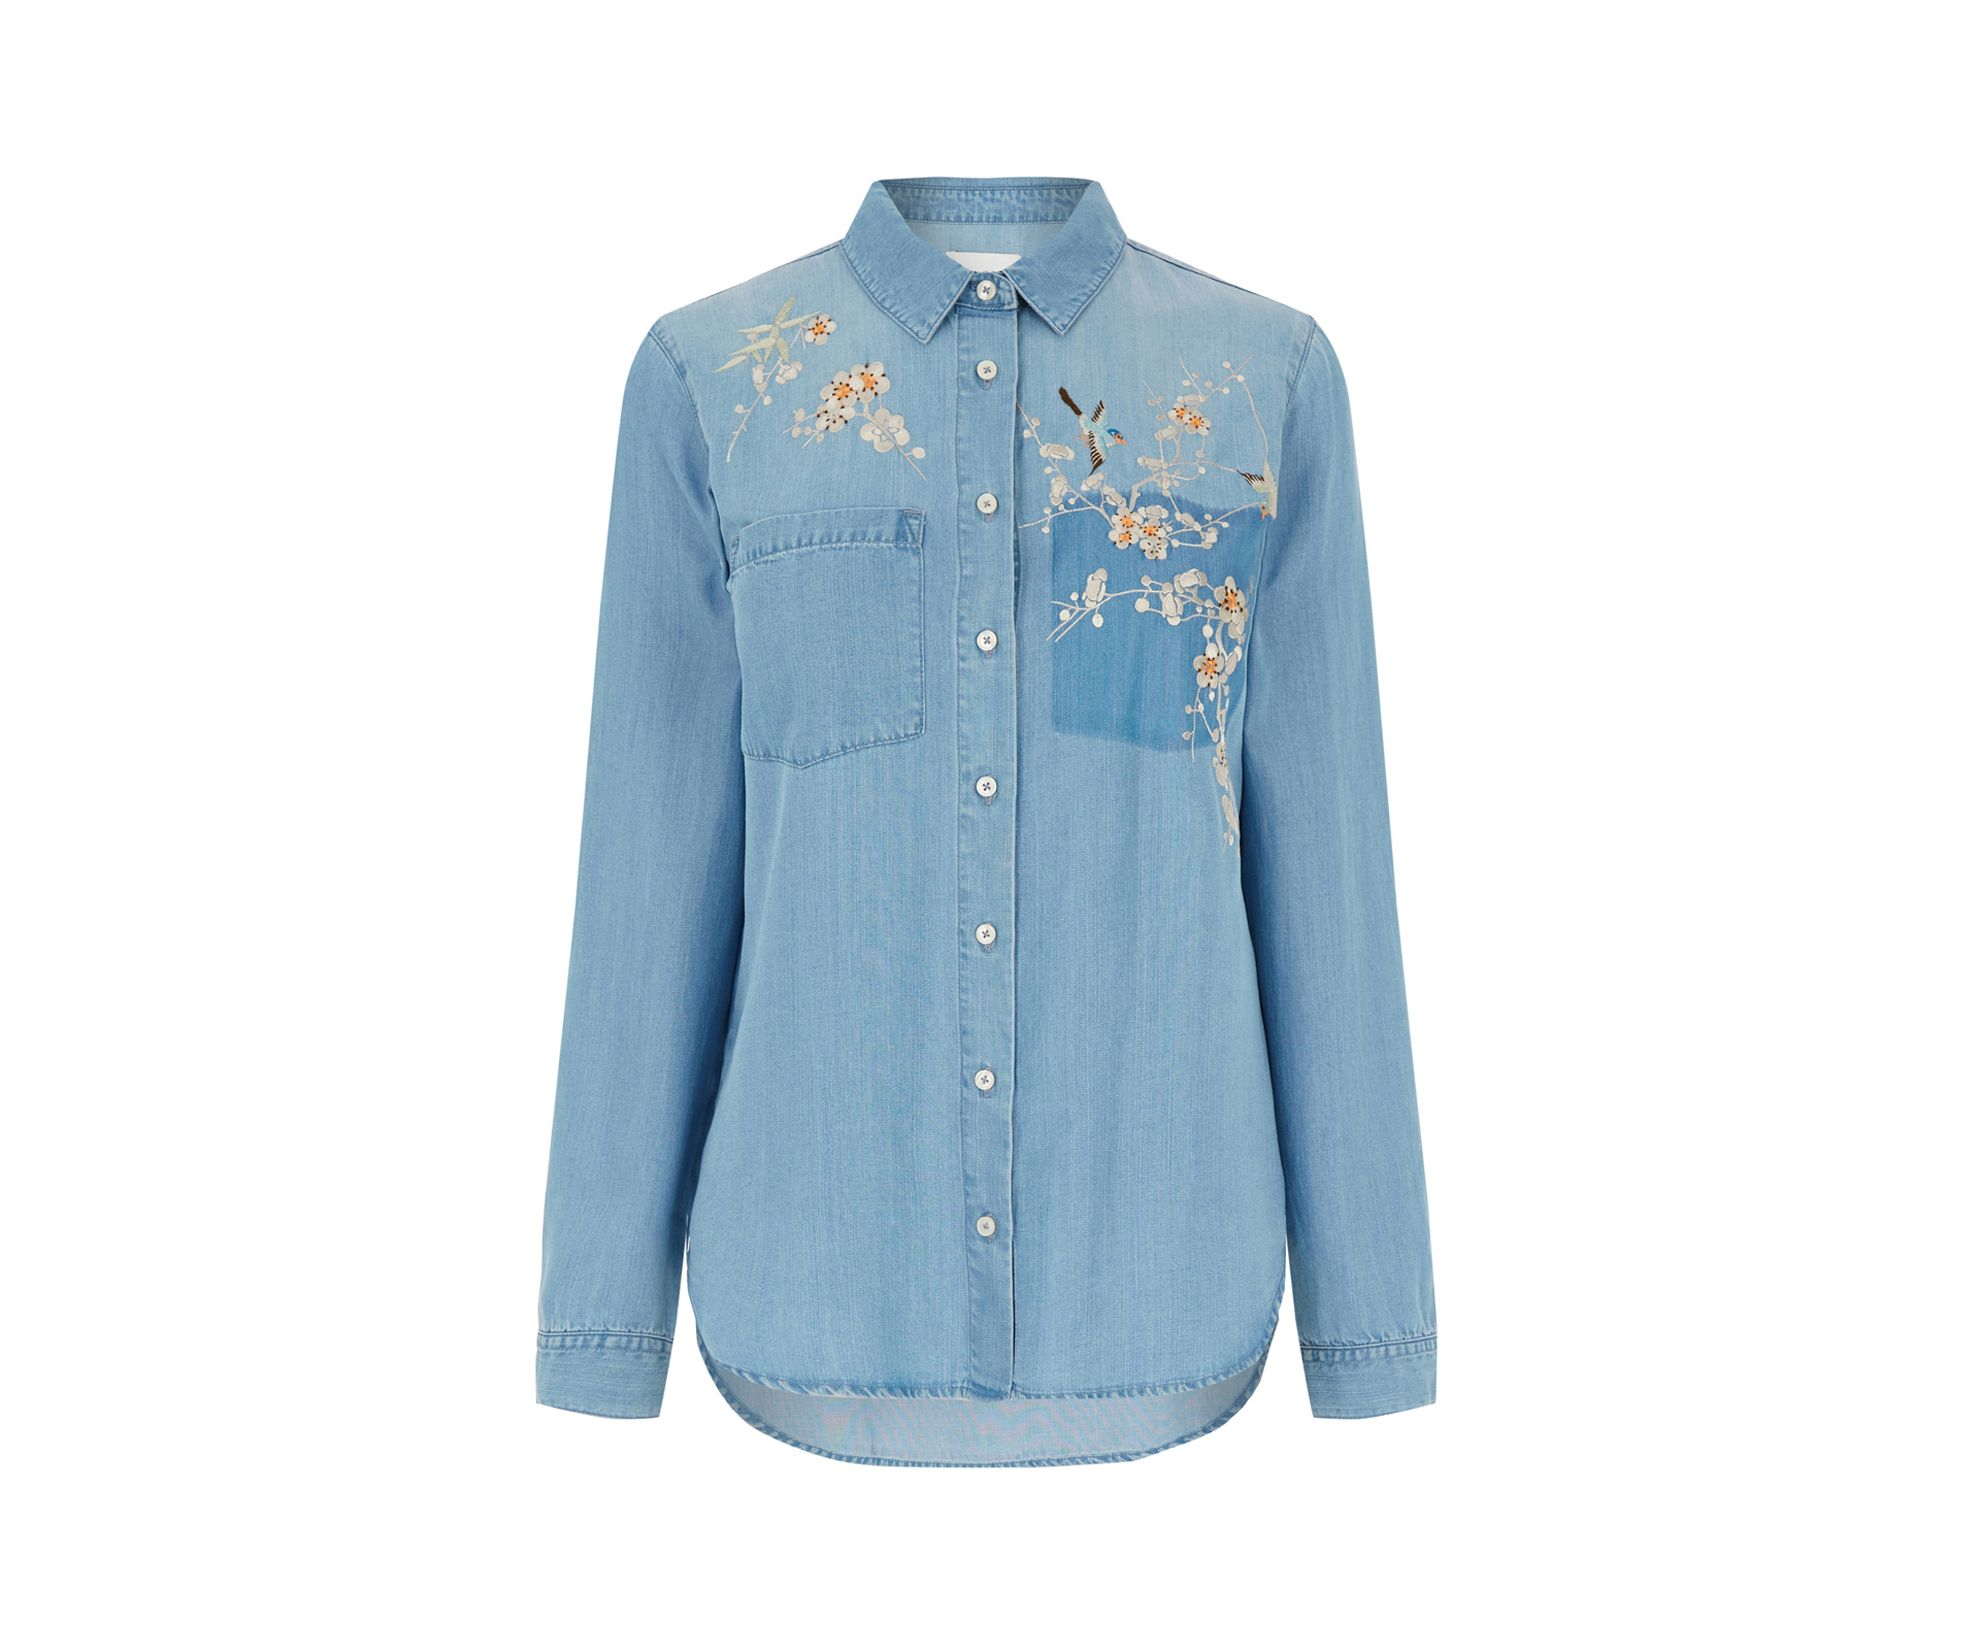 e040a17a53 Chambray Shirt Womens Shopstyle